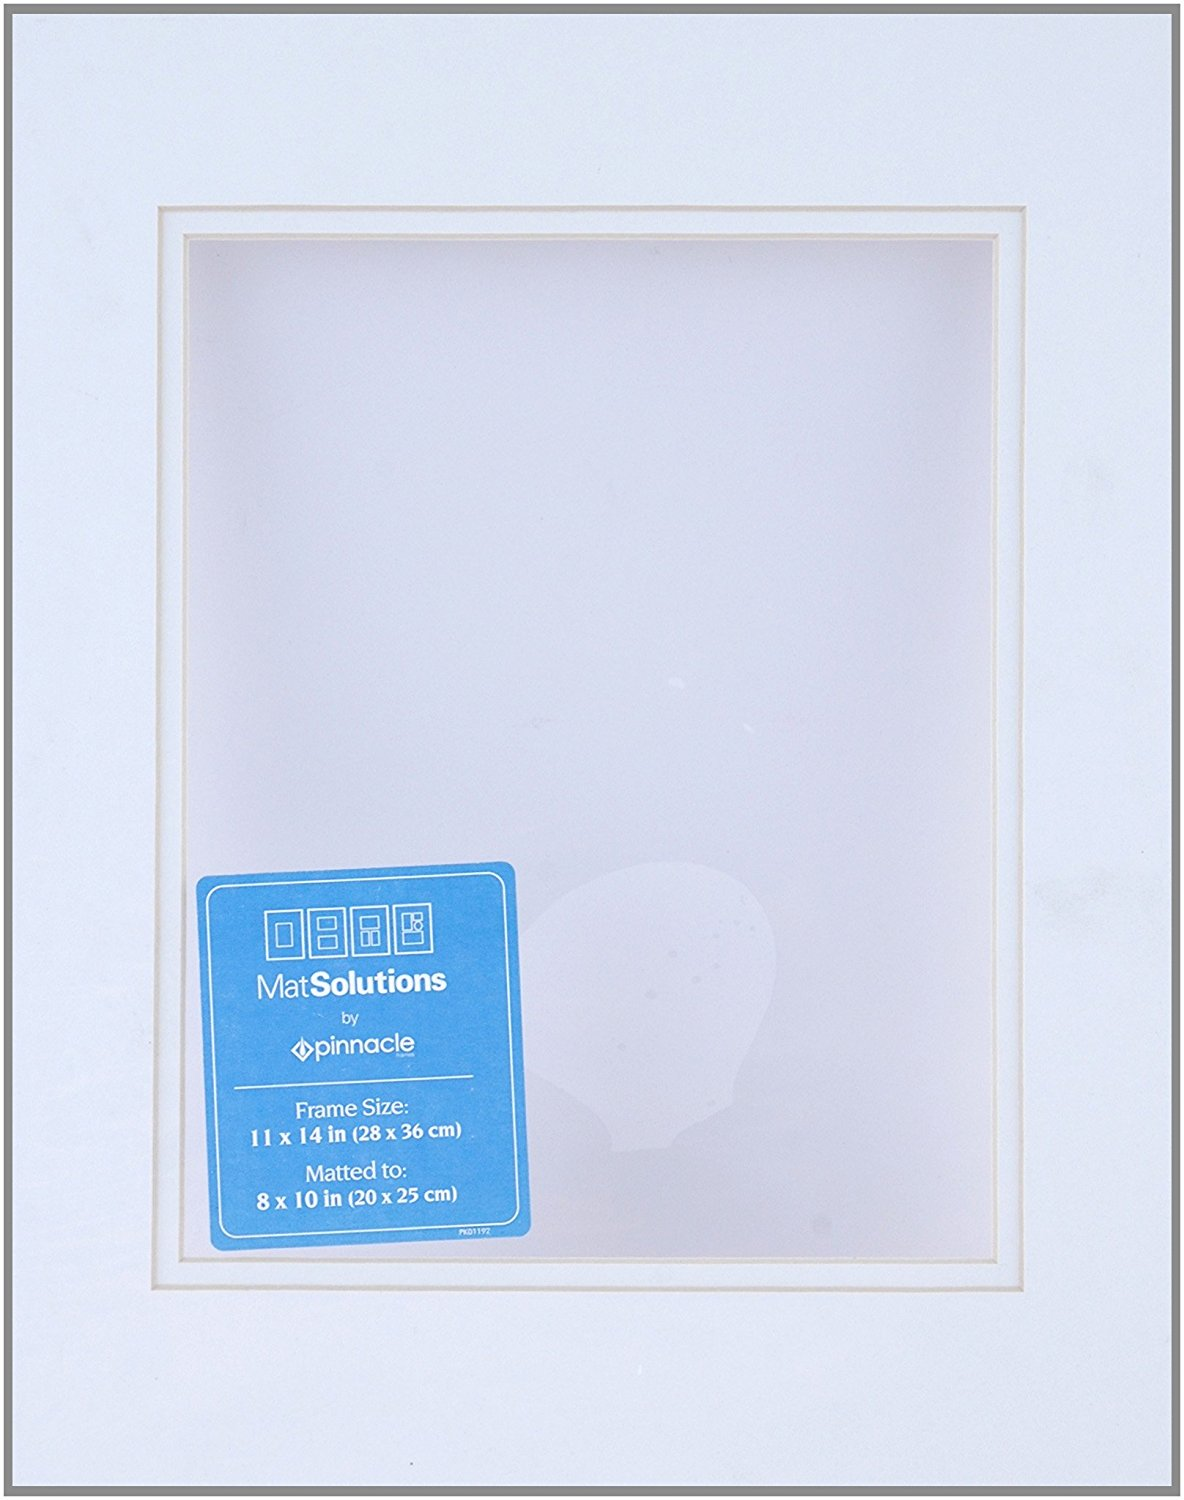 Gallery Solutions Custom Bevel Cut Double White Mat for 11x14 Picture Frame with 8x10 Opening